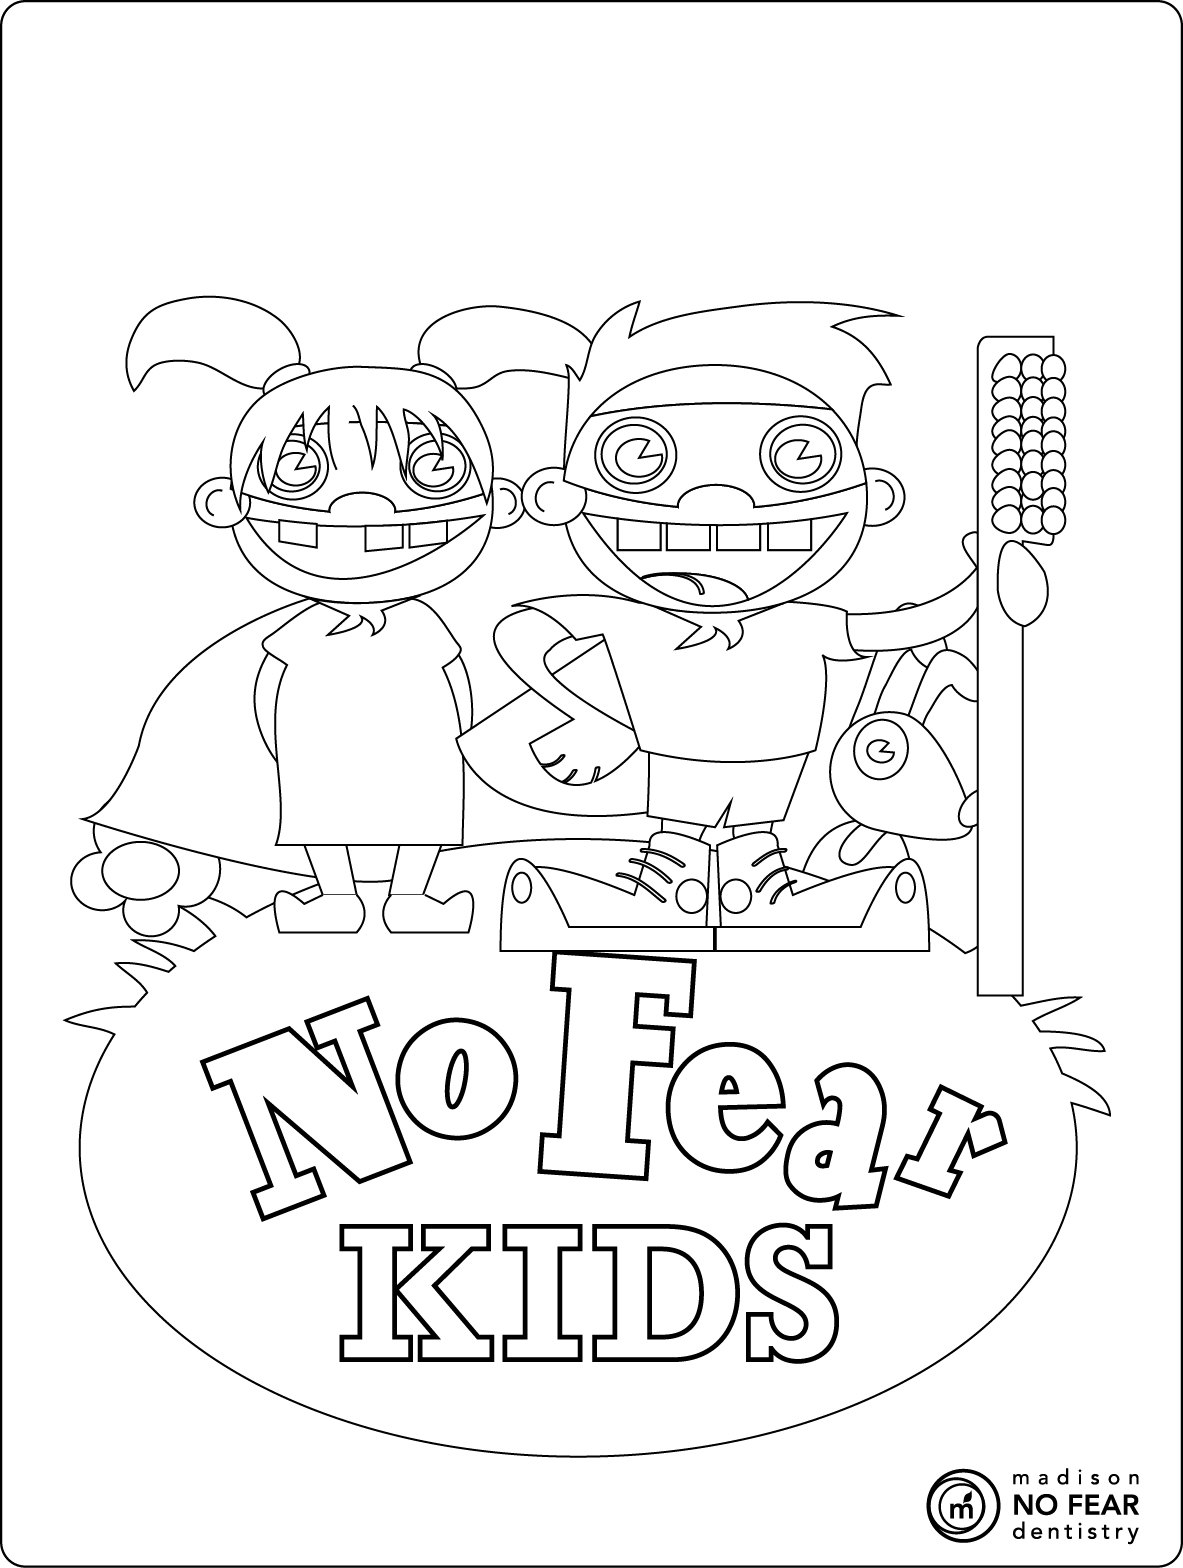 No Fear Kids Zone Download Of Free Easy Printable Coloring Pages About Teeth Collection